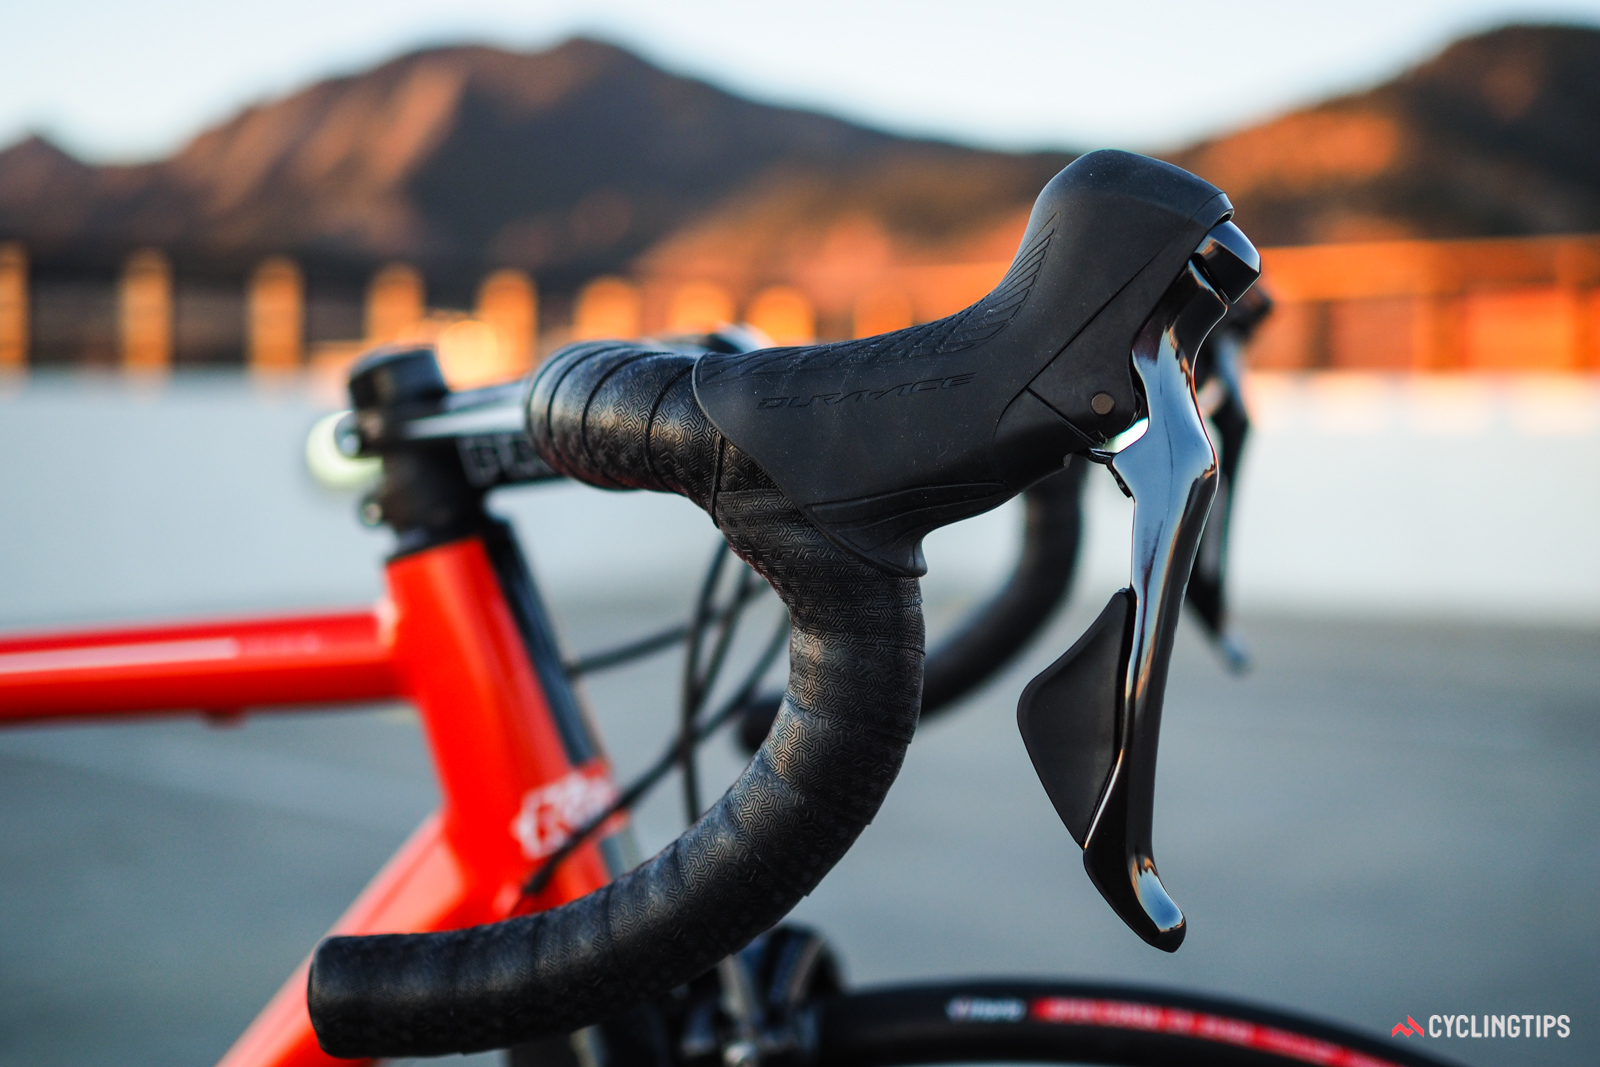 The lever bodies are impressively compact and pleasantly shaped with no sharp edges. Brake lever reach is set shorter straight out of the box, too.